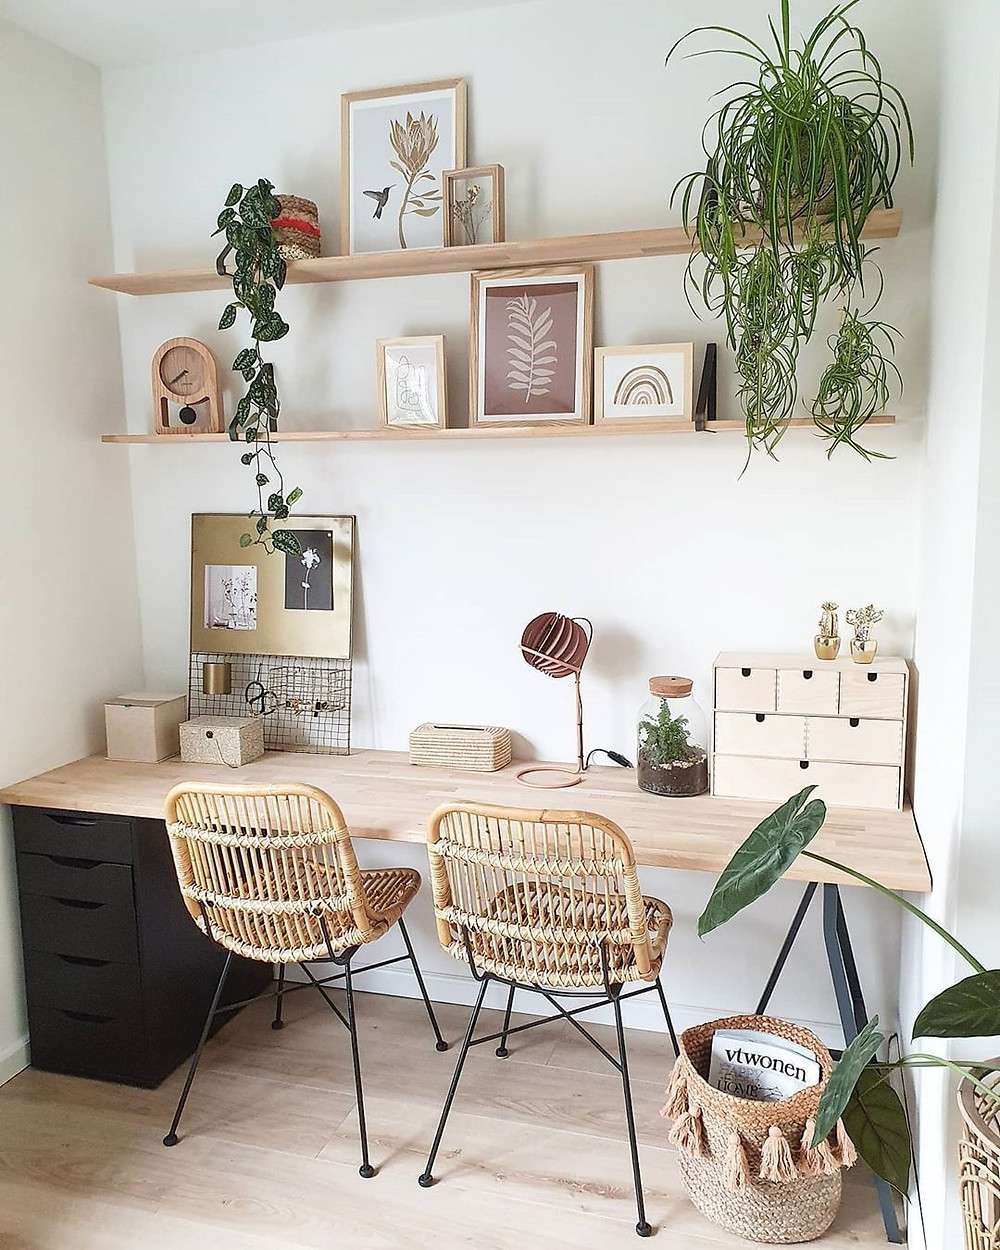 bohemian wooden work from home office with decorations on shelves with plants